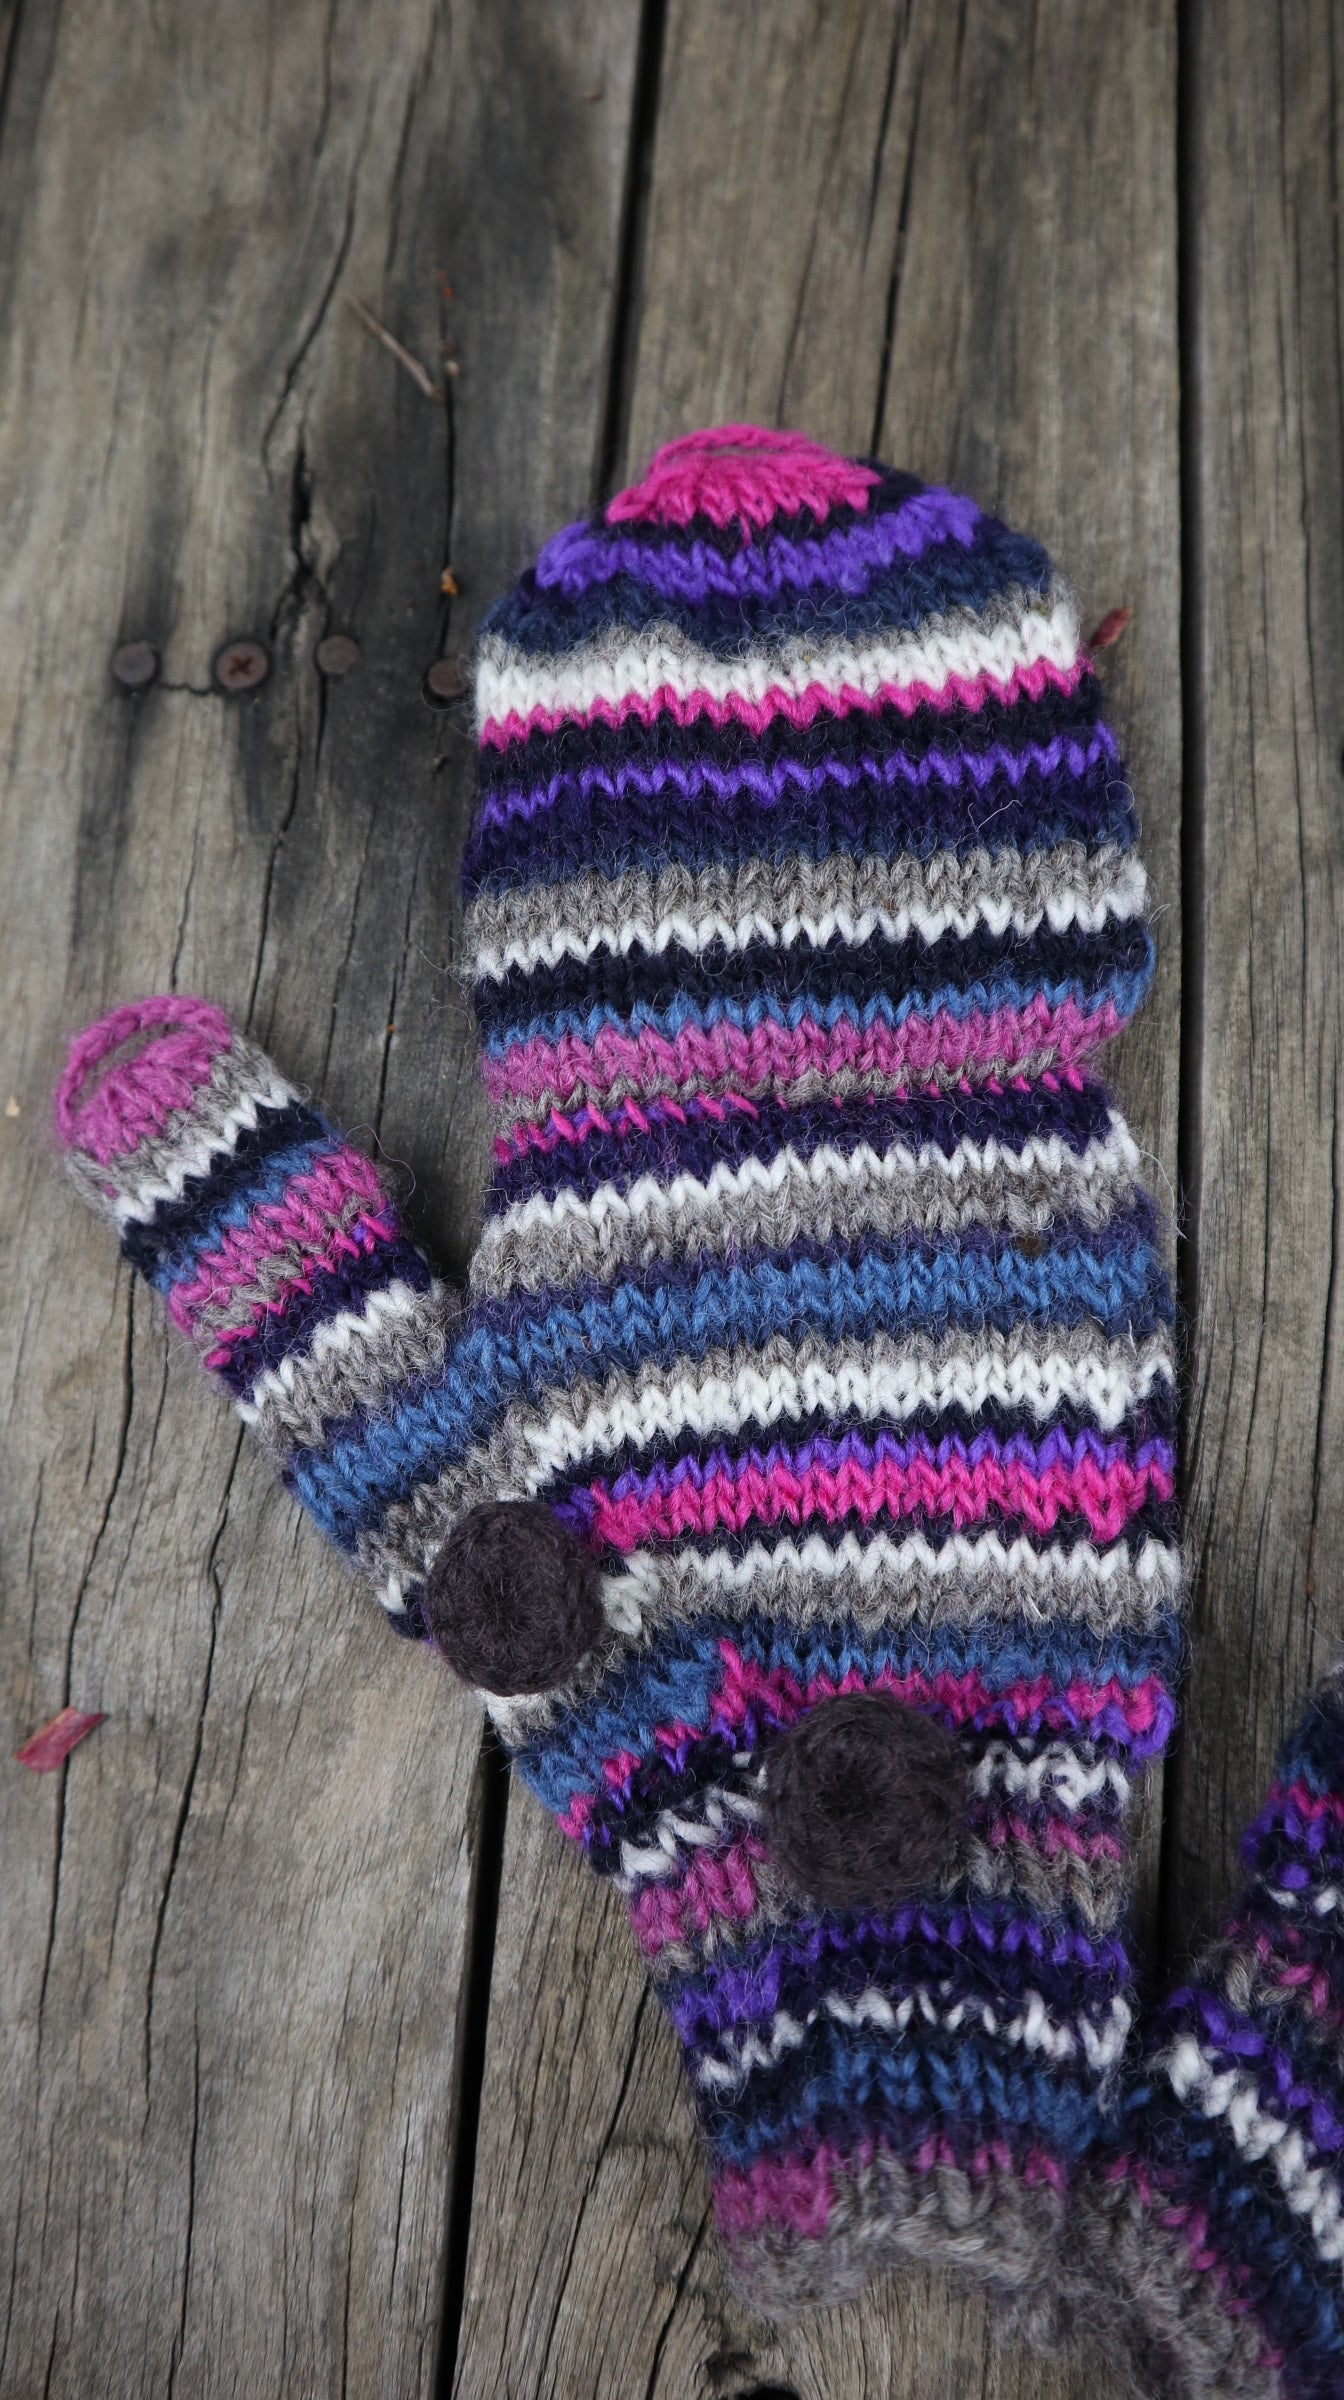 Fair Trade Ethical Children's Striped Fingerless Gloves with Cap in Pink, Purple, Brown and Black